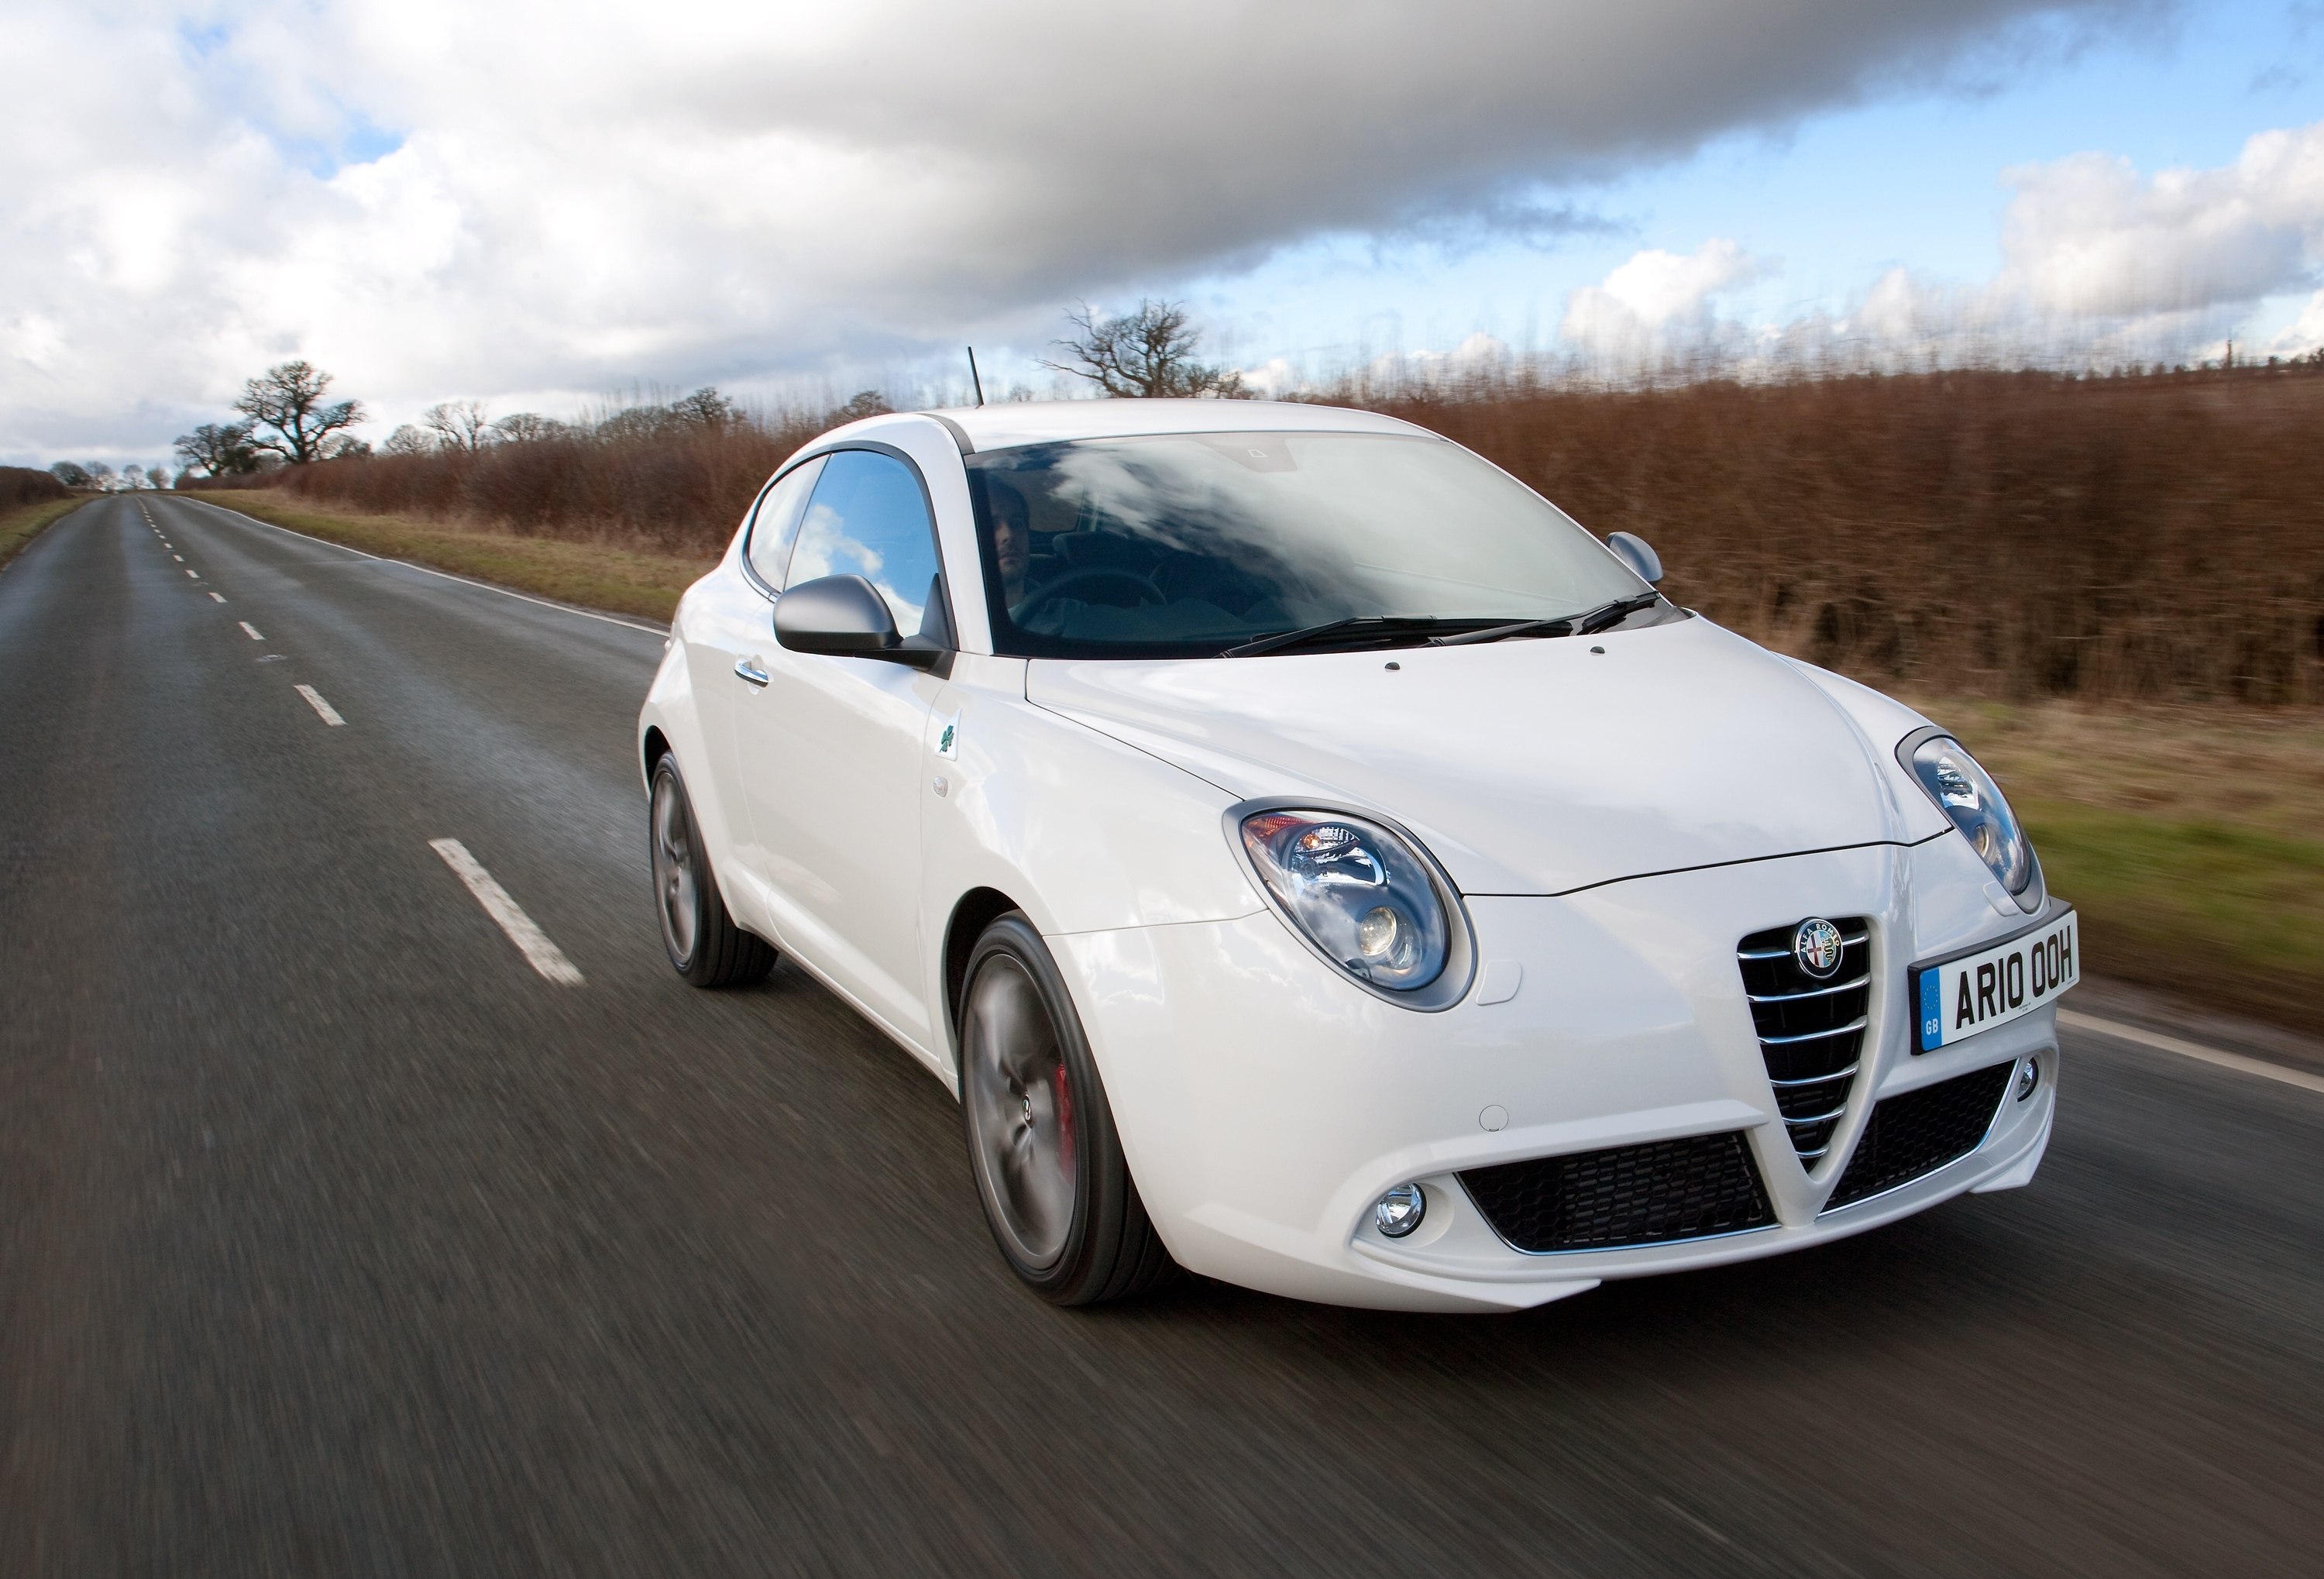 alfa romeo mito 1.4 tb multiair 135bhp distinctive - car write ups